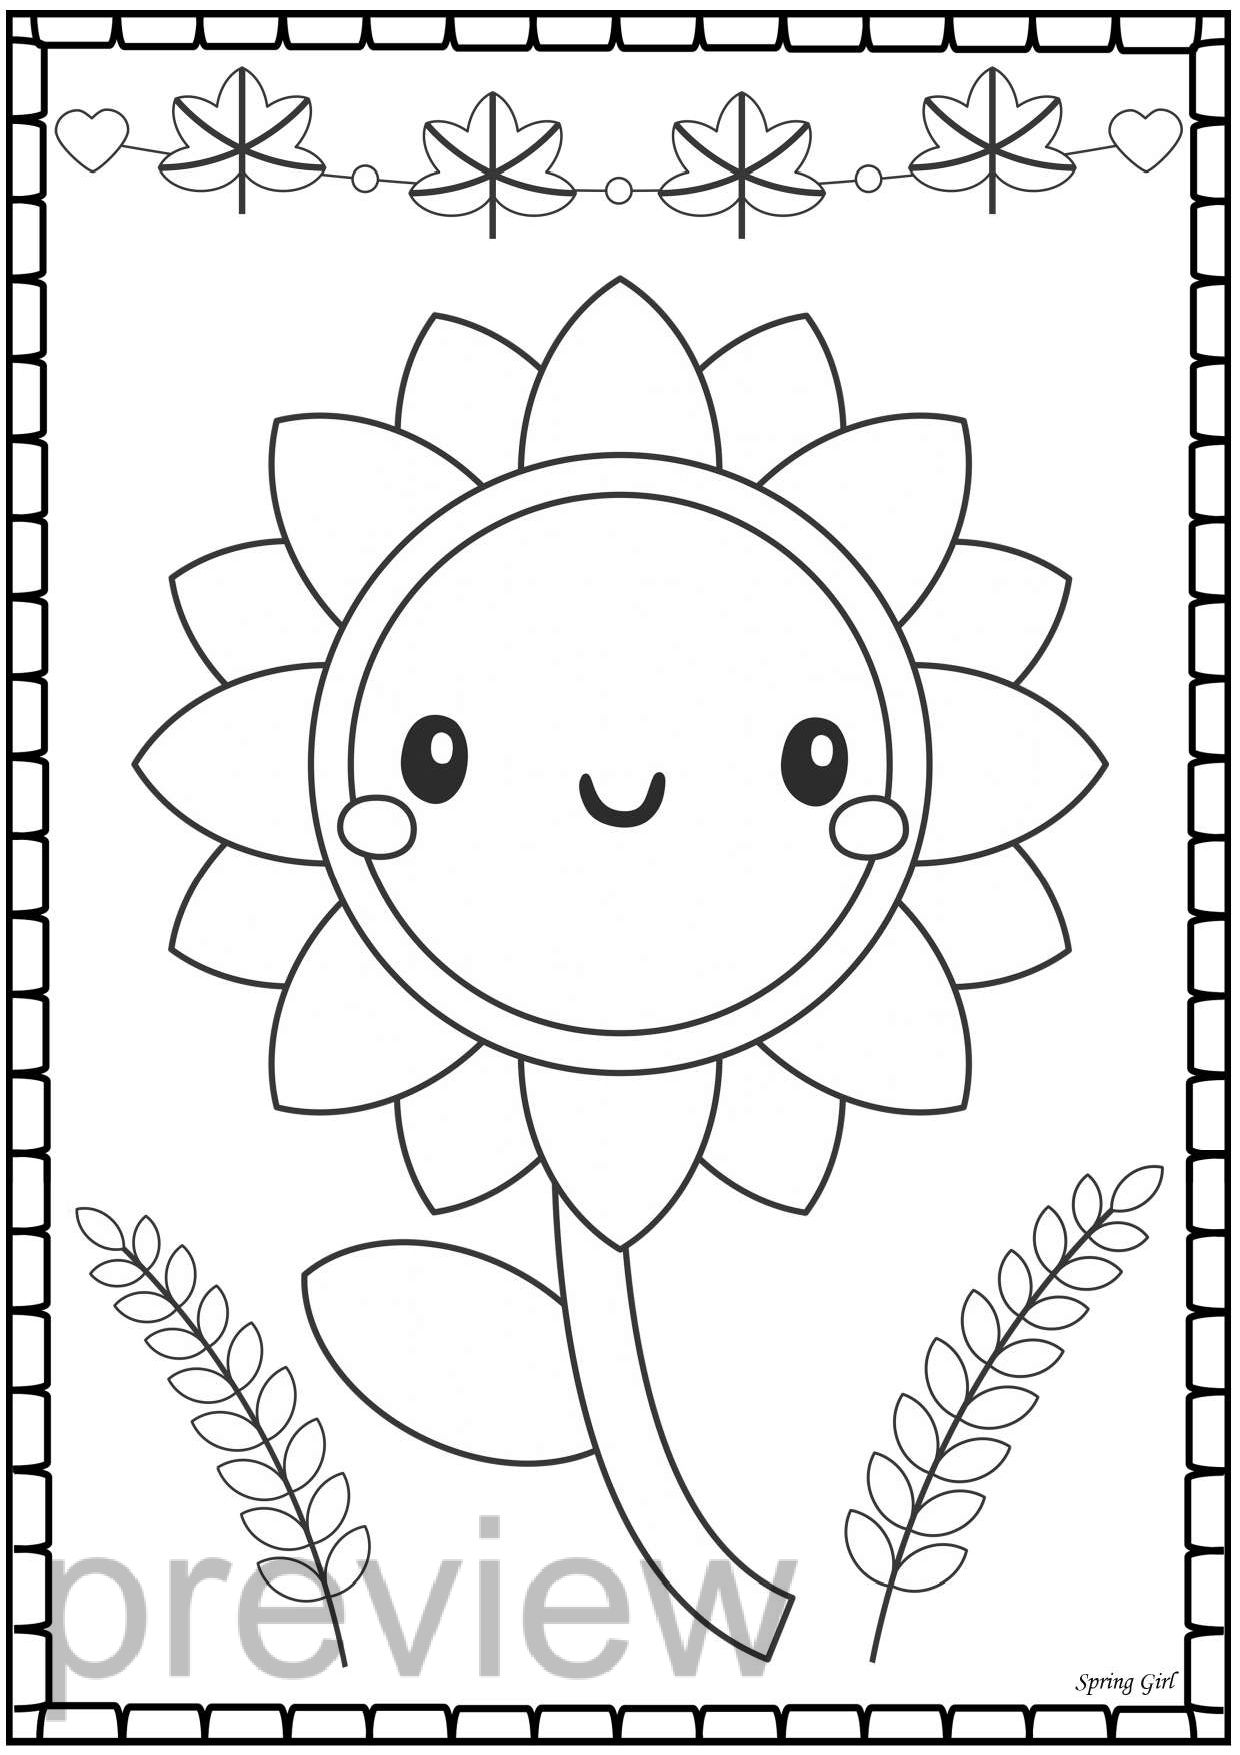 Thanksgiving Coloring Pages (With images) | Thanksgiving ...